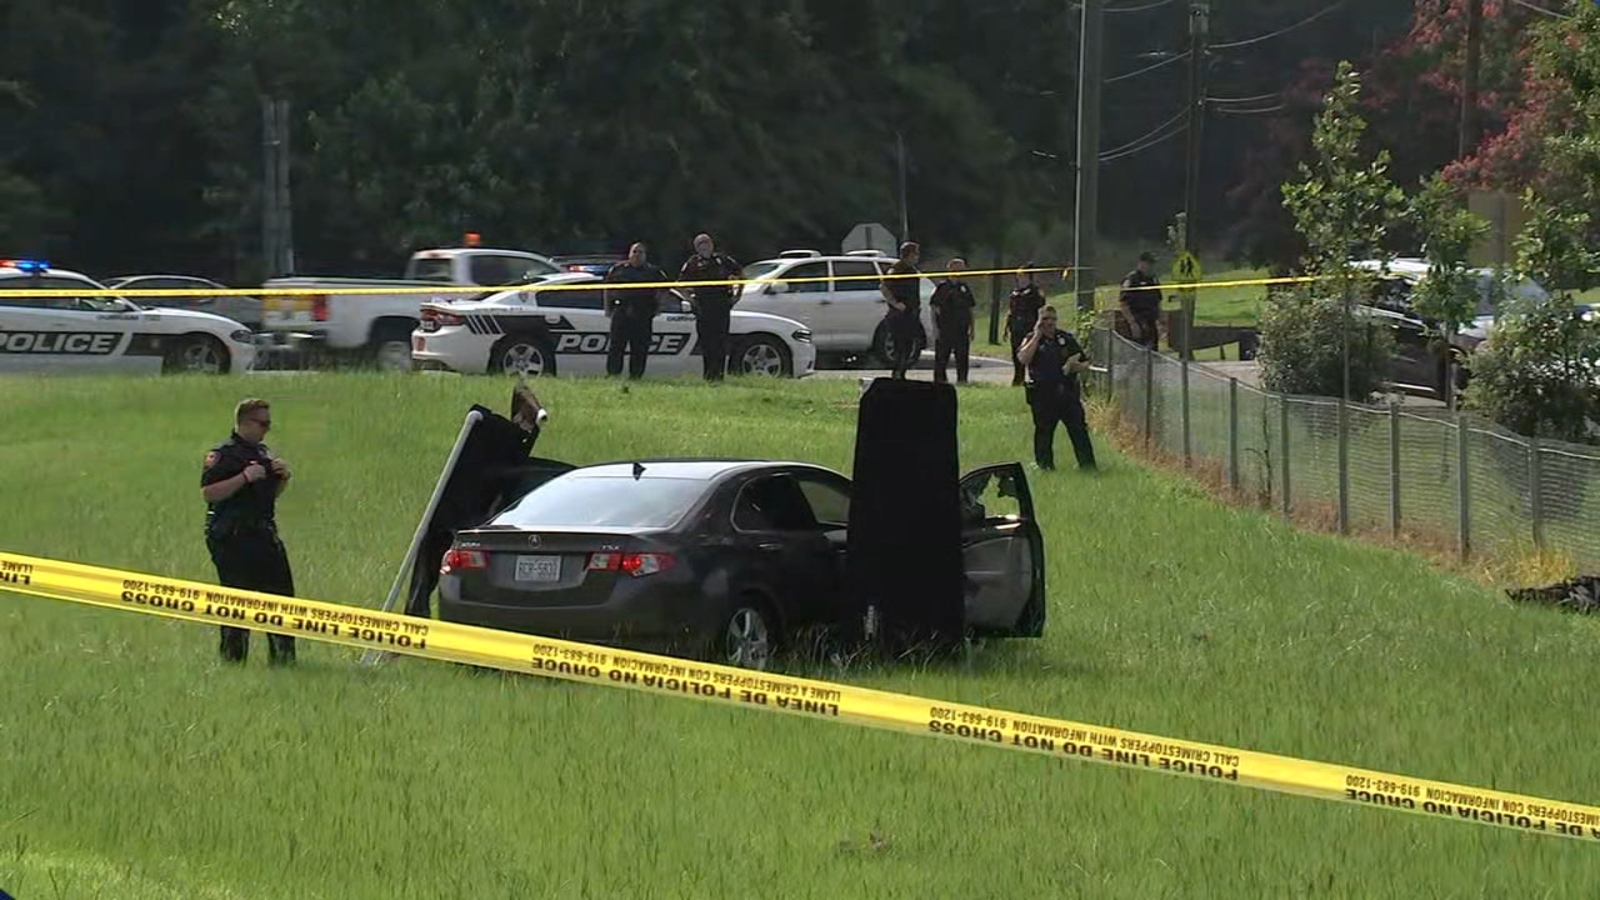 Police: 2 dead after interstate shooting in North Carolina